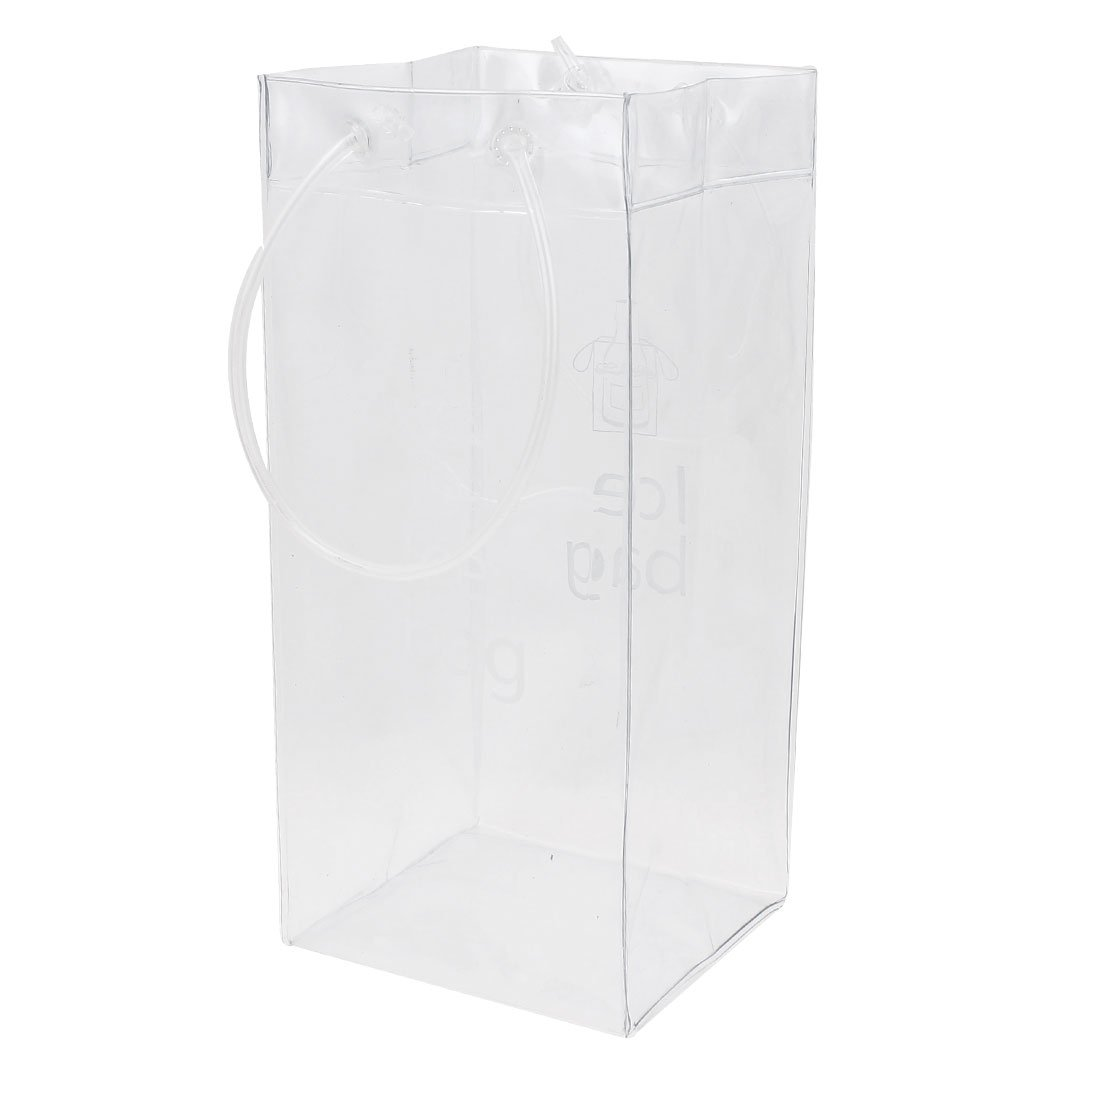 PVC Champagne Drink Wine Beer Bottle Ice Bag Chiller Cooler Clear uxcell a15032400ux0019